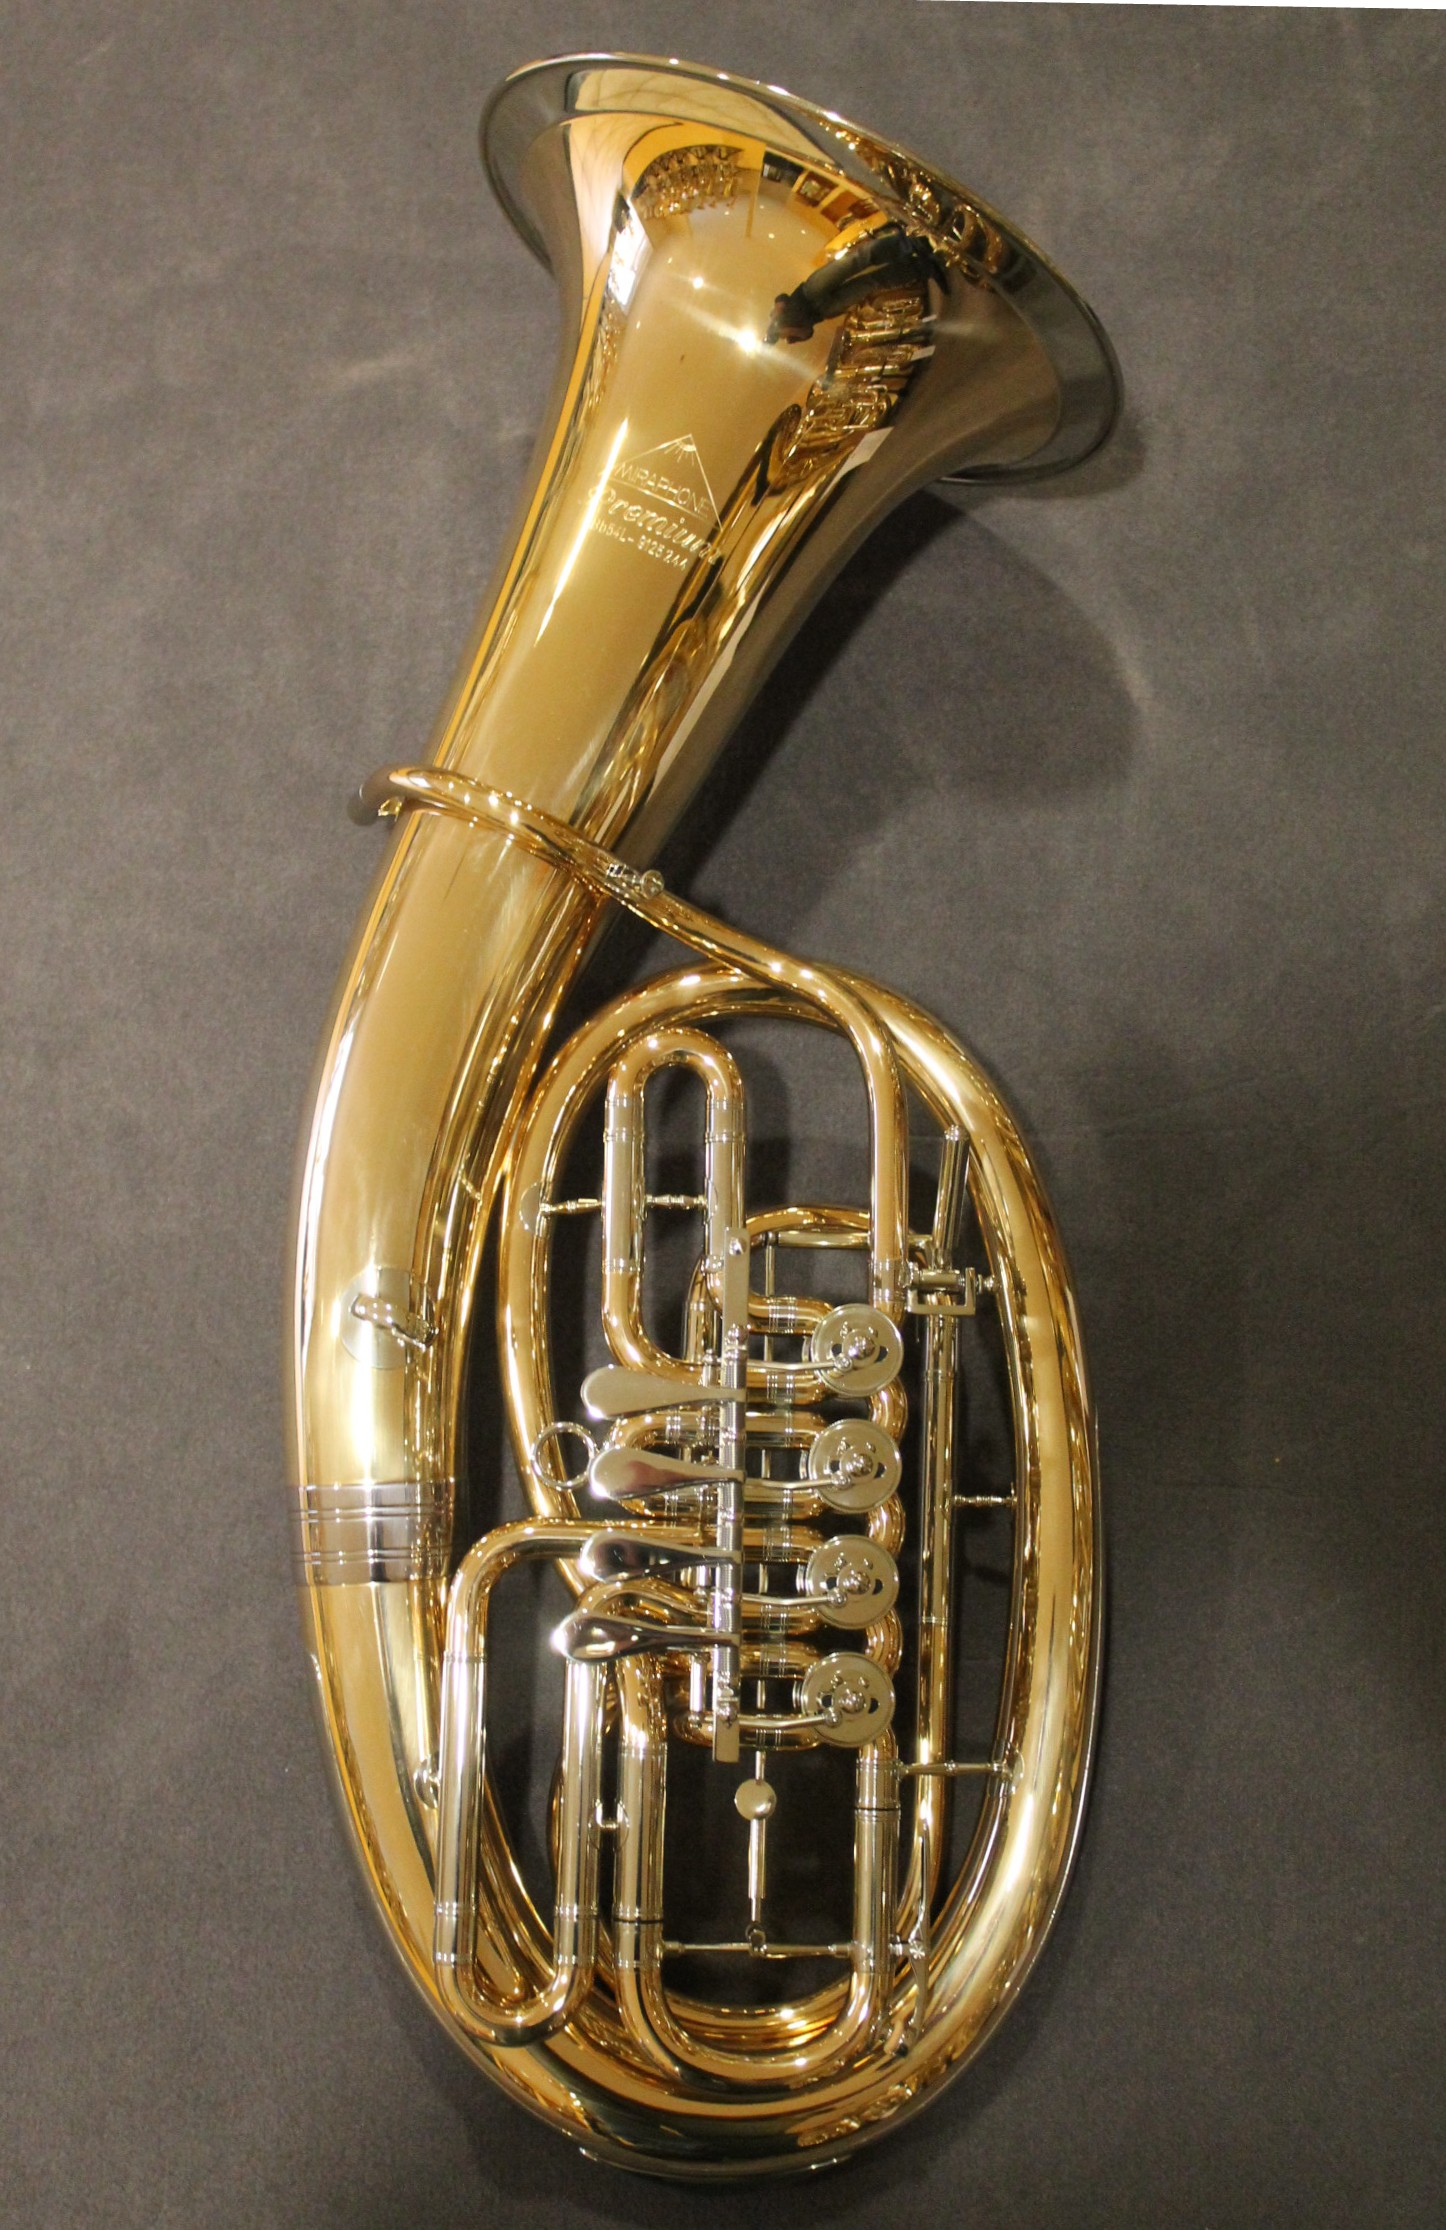 miraphone 496 hagen tuba in bbb aus goldmessing inkl. Black Bedroom Furniture Sets. Home Design Ideas